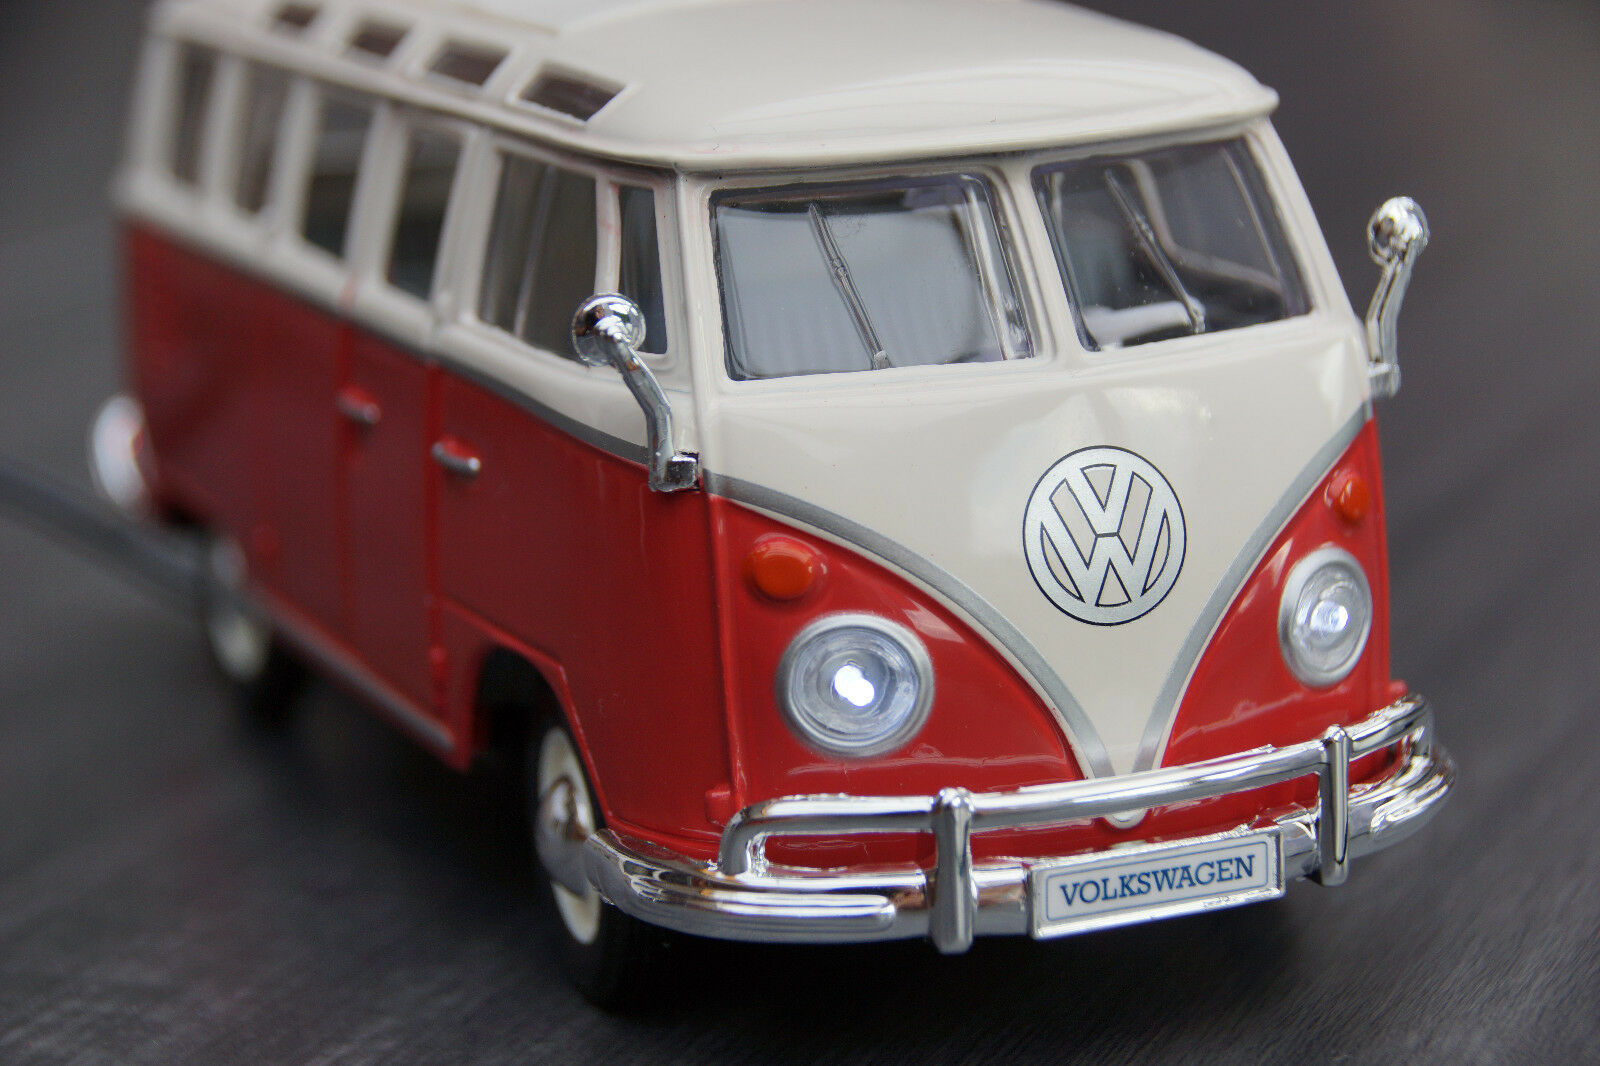 Volkswagen VW Bus t1 Samba with LED Lighting (Xenon) in 1 24 rot Weiß